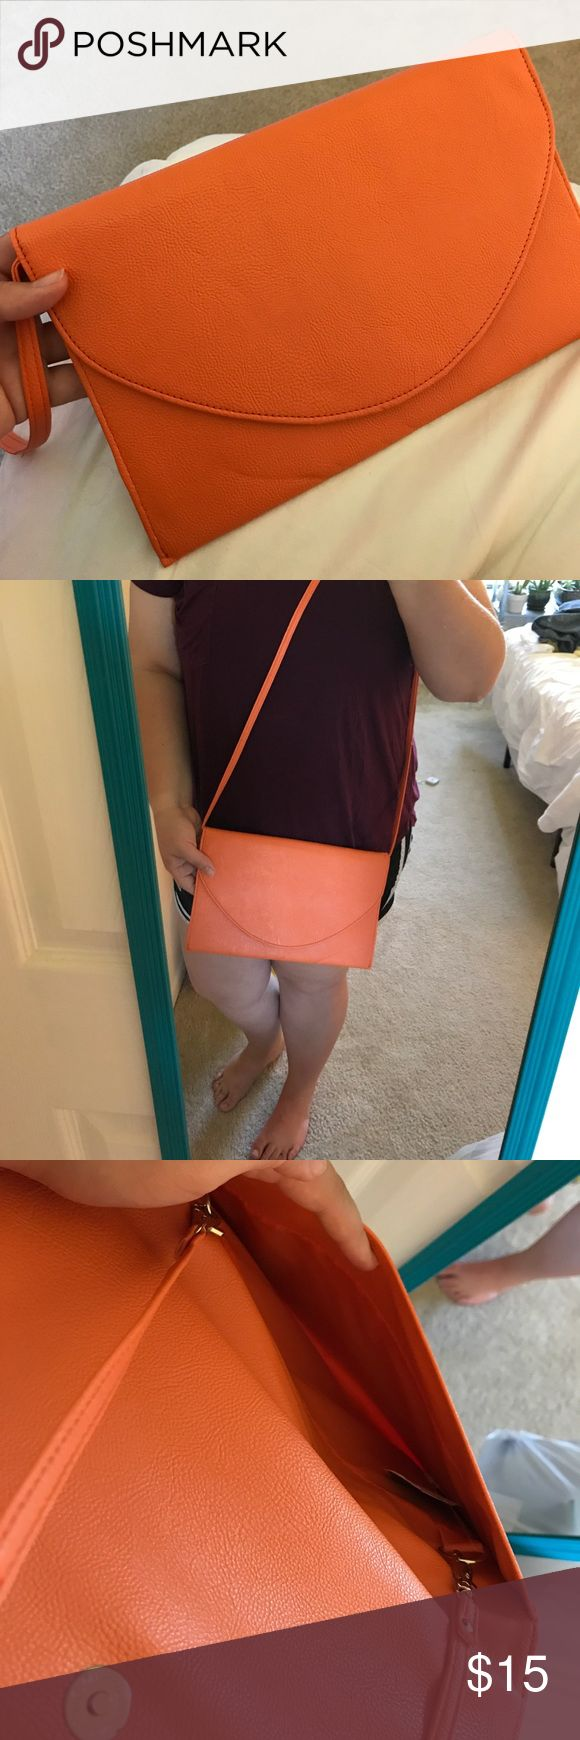 NWT - Orange clutch - detachable strap Would be so cute for a gameday!!! Clemson, Auburn - especially monogrammed. Strap can be detached. No pockets inside Bags Clutches & Wristlets